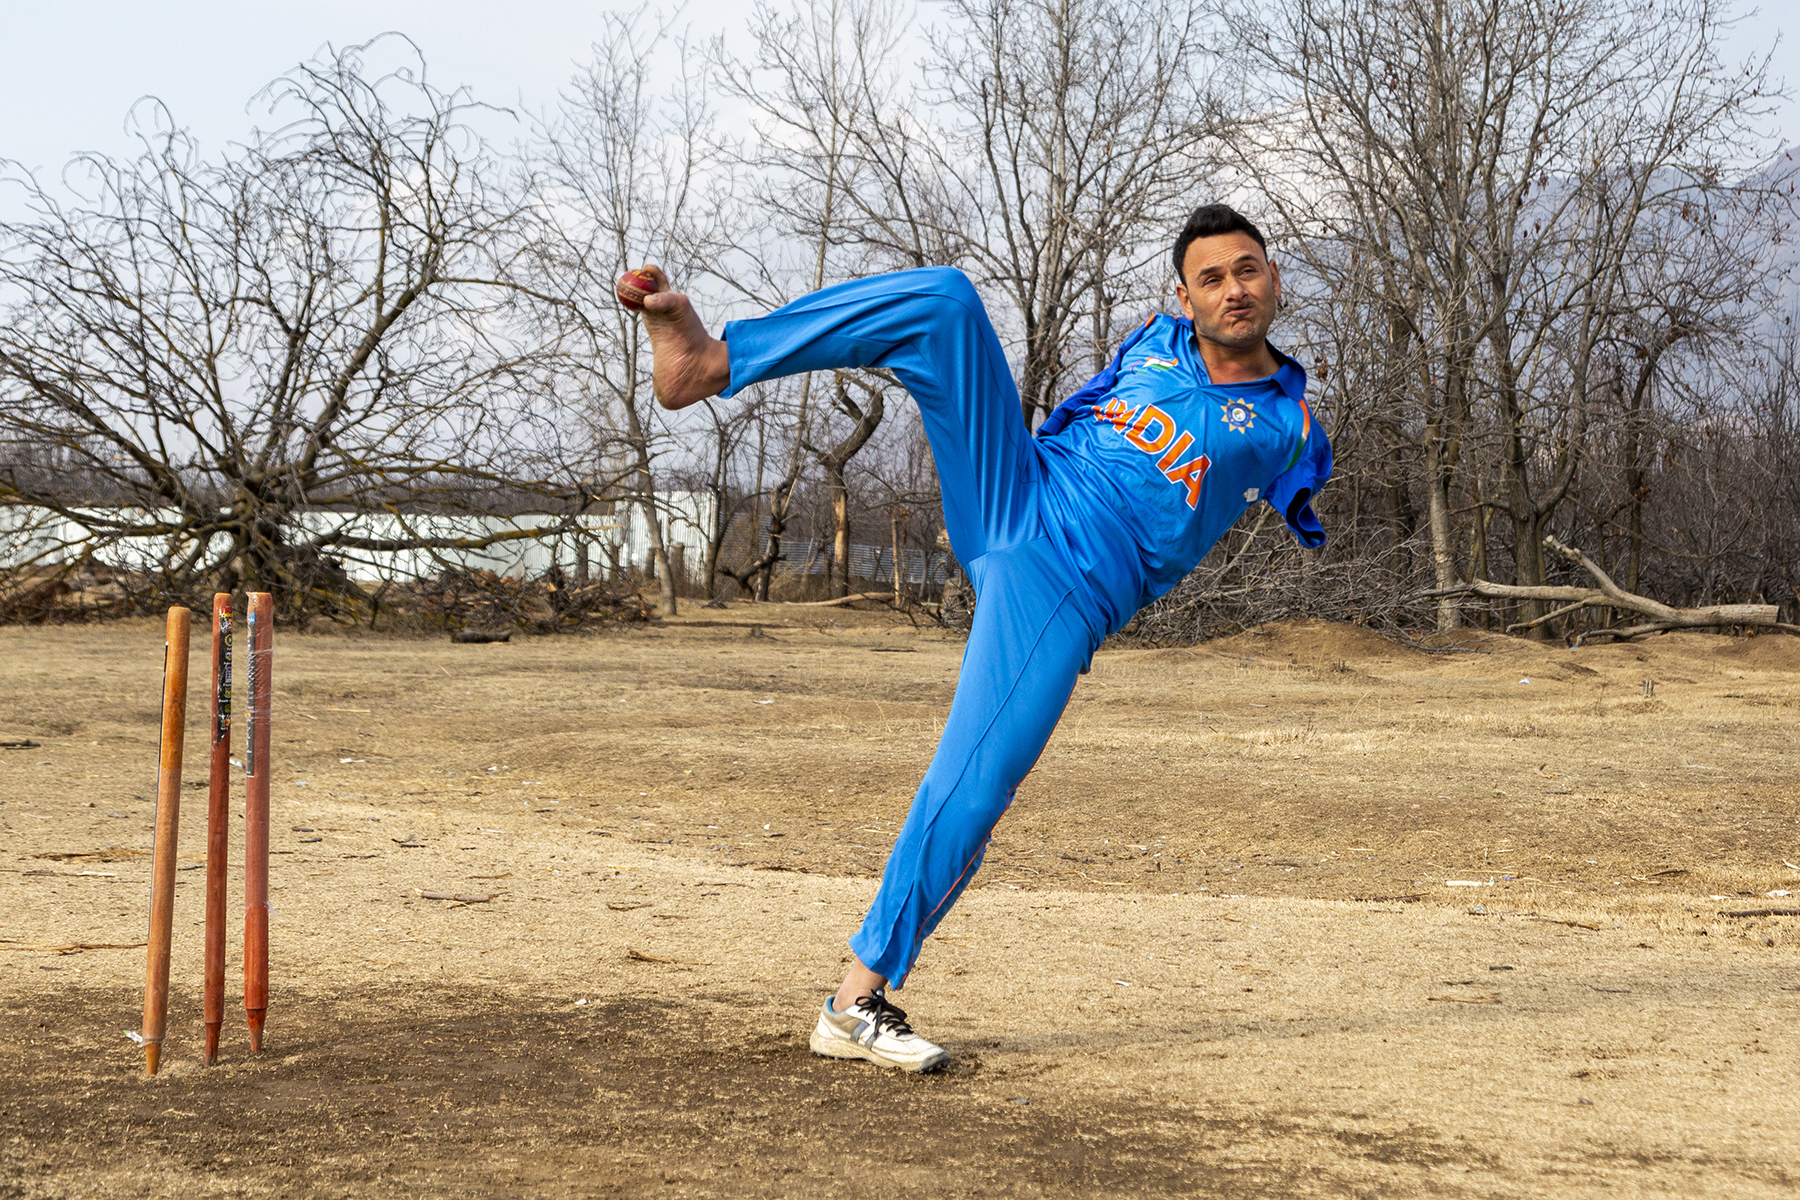 Amir Hussain Lone in blue cricket jersey and pants is bowling with his right leg raised high up in the air while his body is tilted to the right. The ground is a flat but rough surface of brownish soil. To the left are three orange cricket stumps and behind him, a row of spindly, leafless trees.